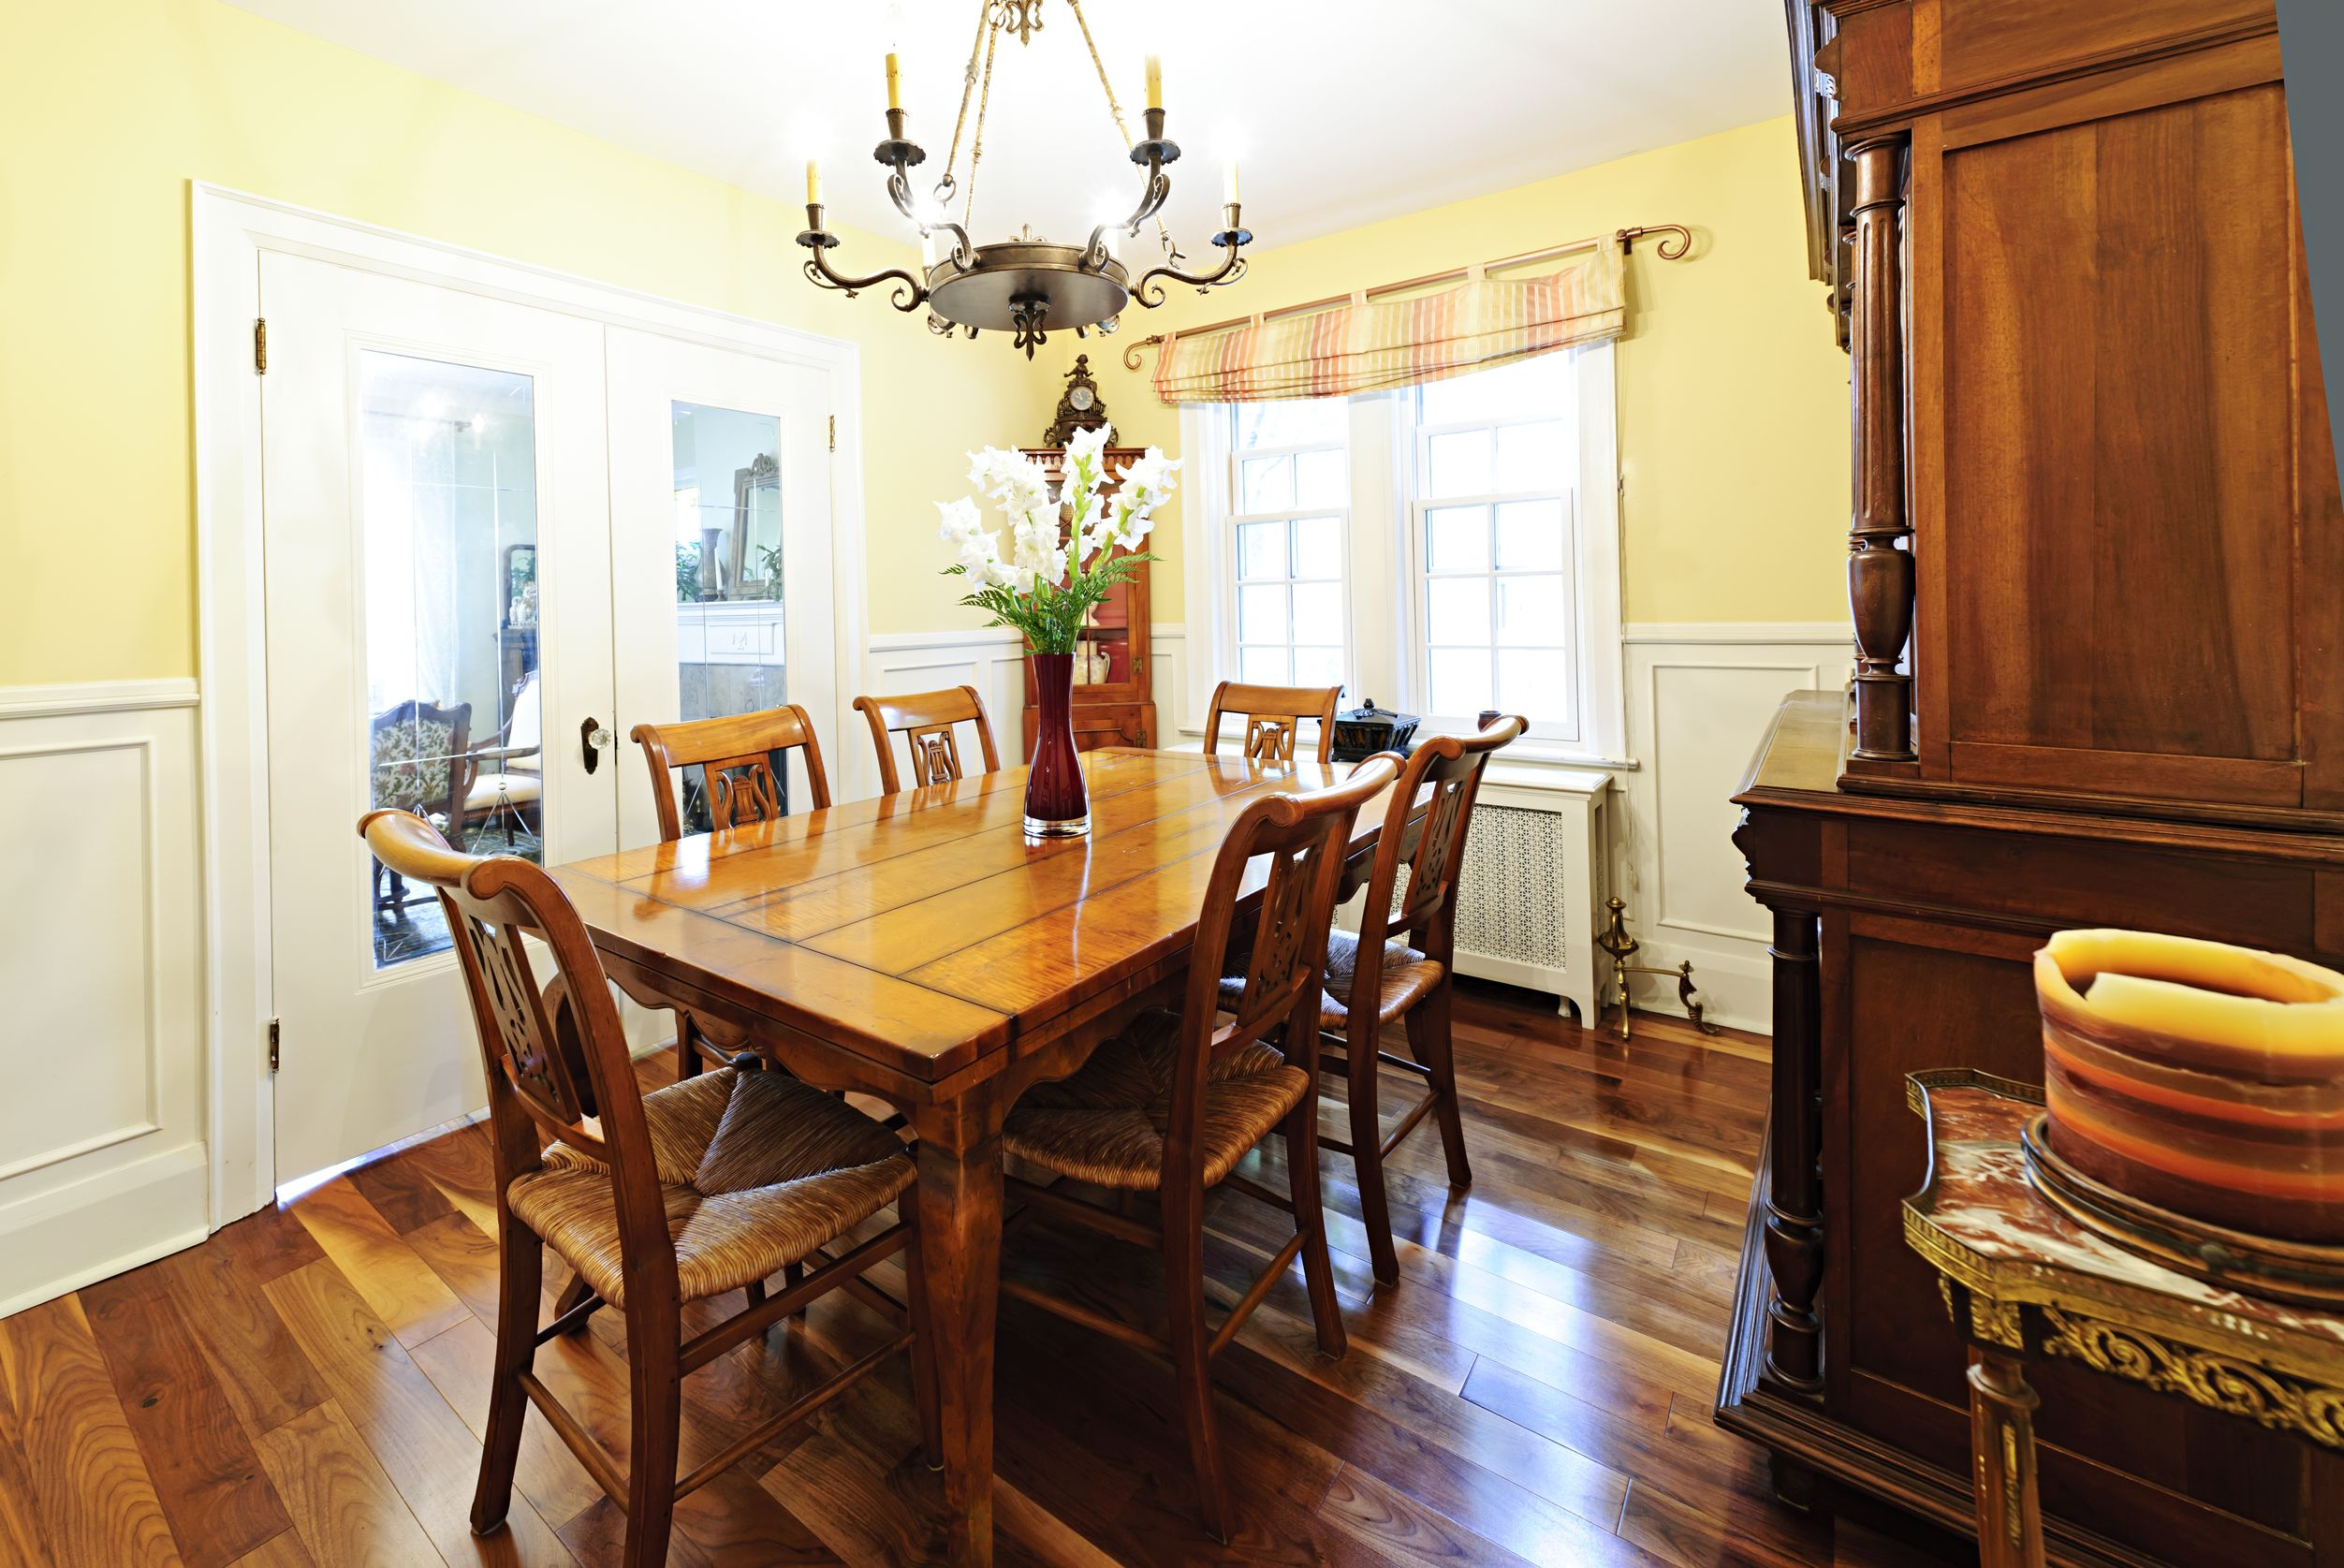 Restoring Old Wood Floors To Their Former Glory